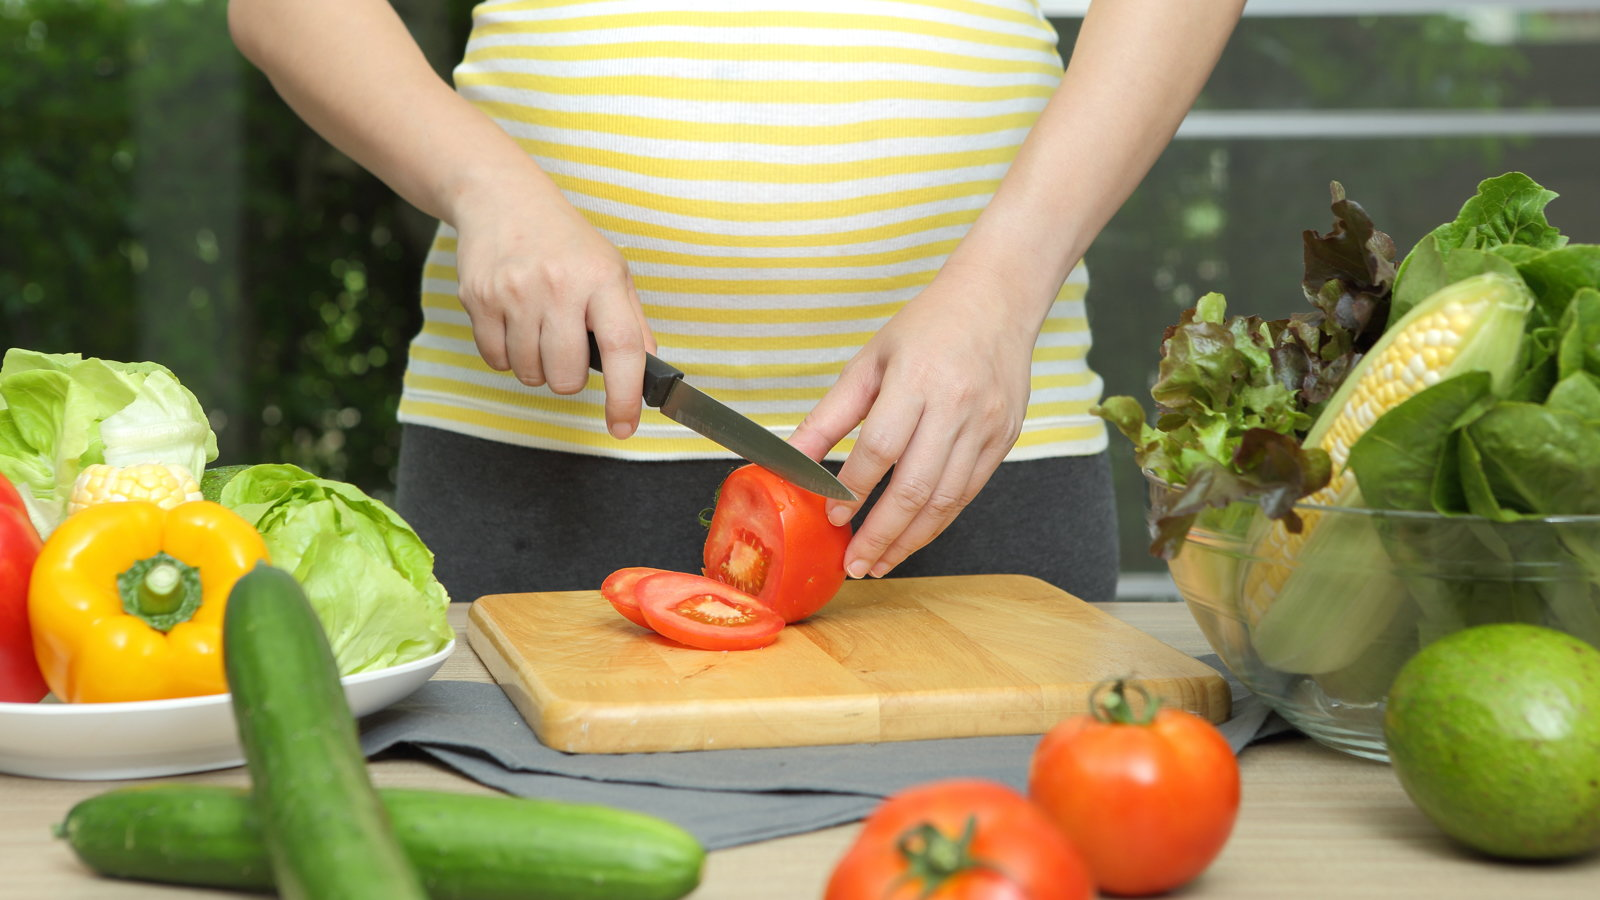 pregnant mom cutting up vegetables